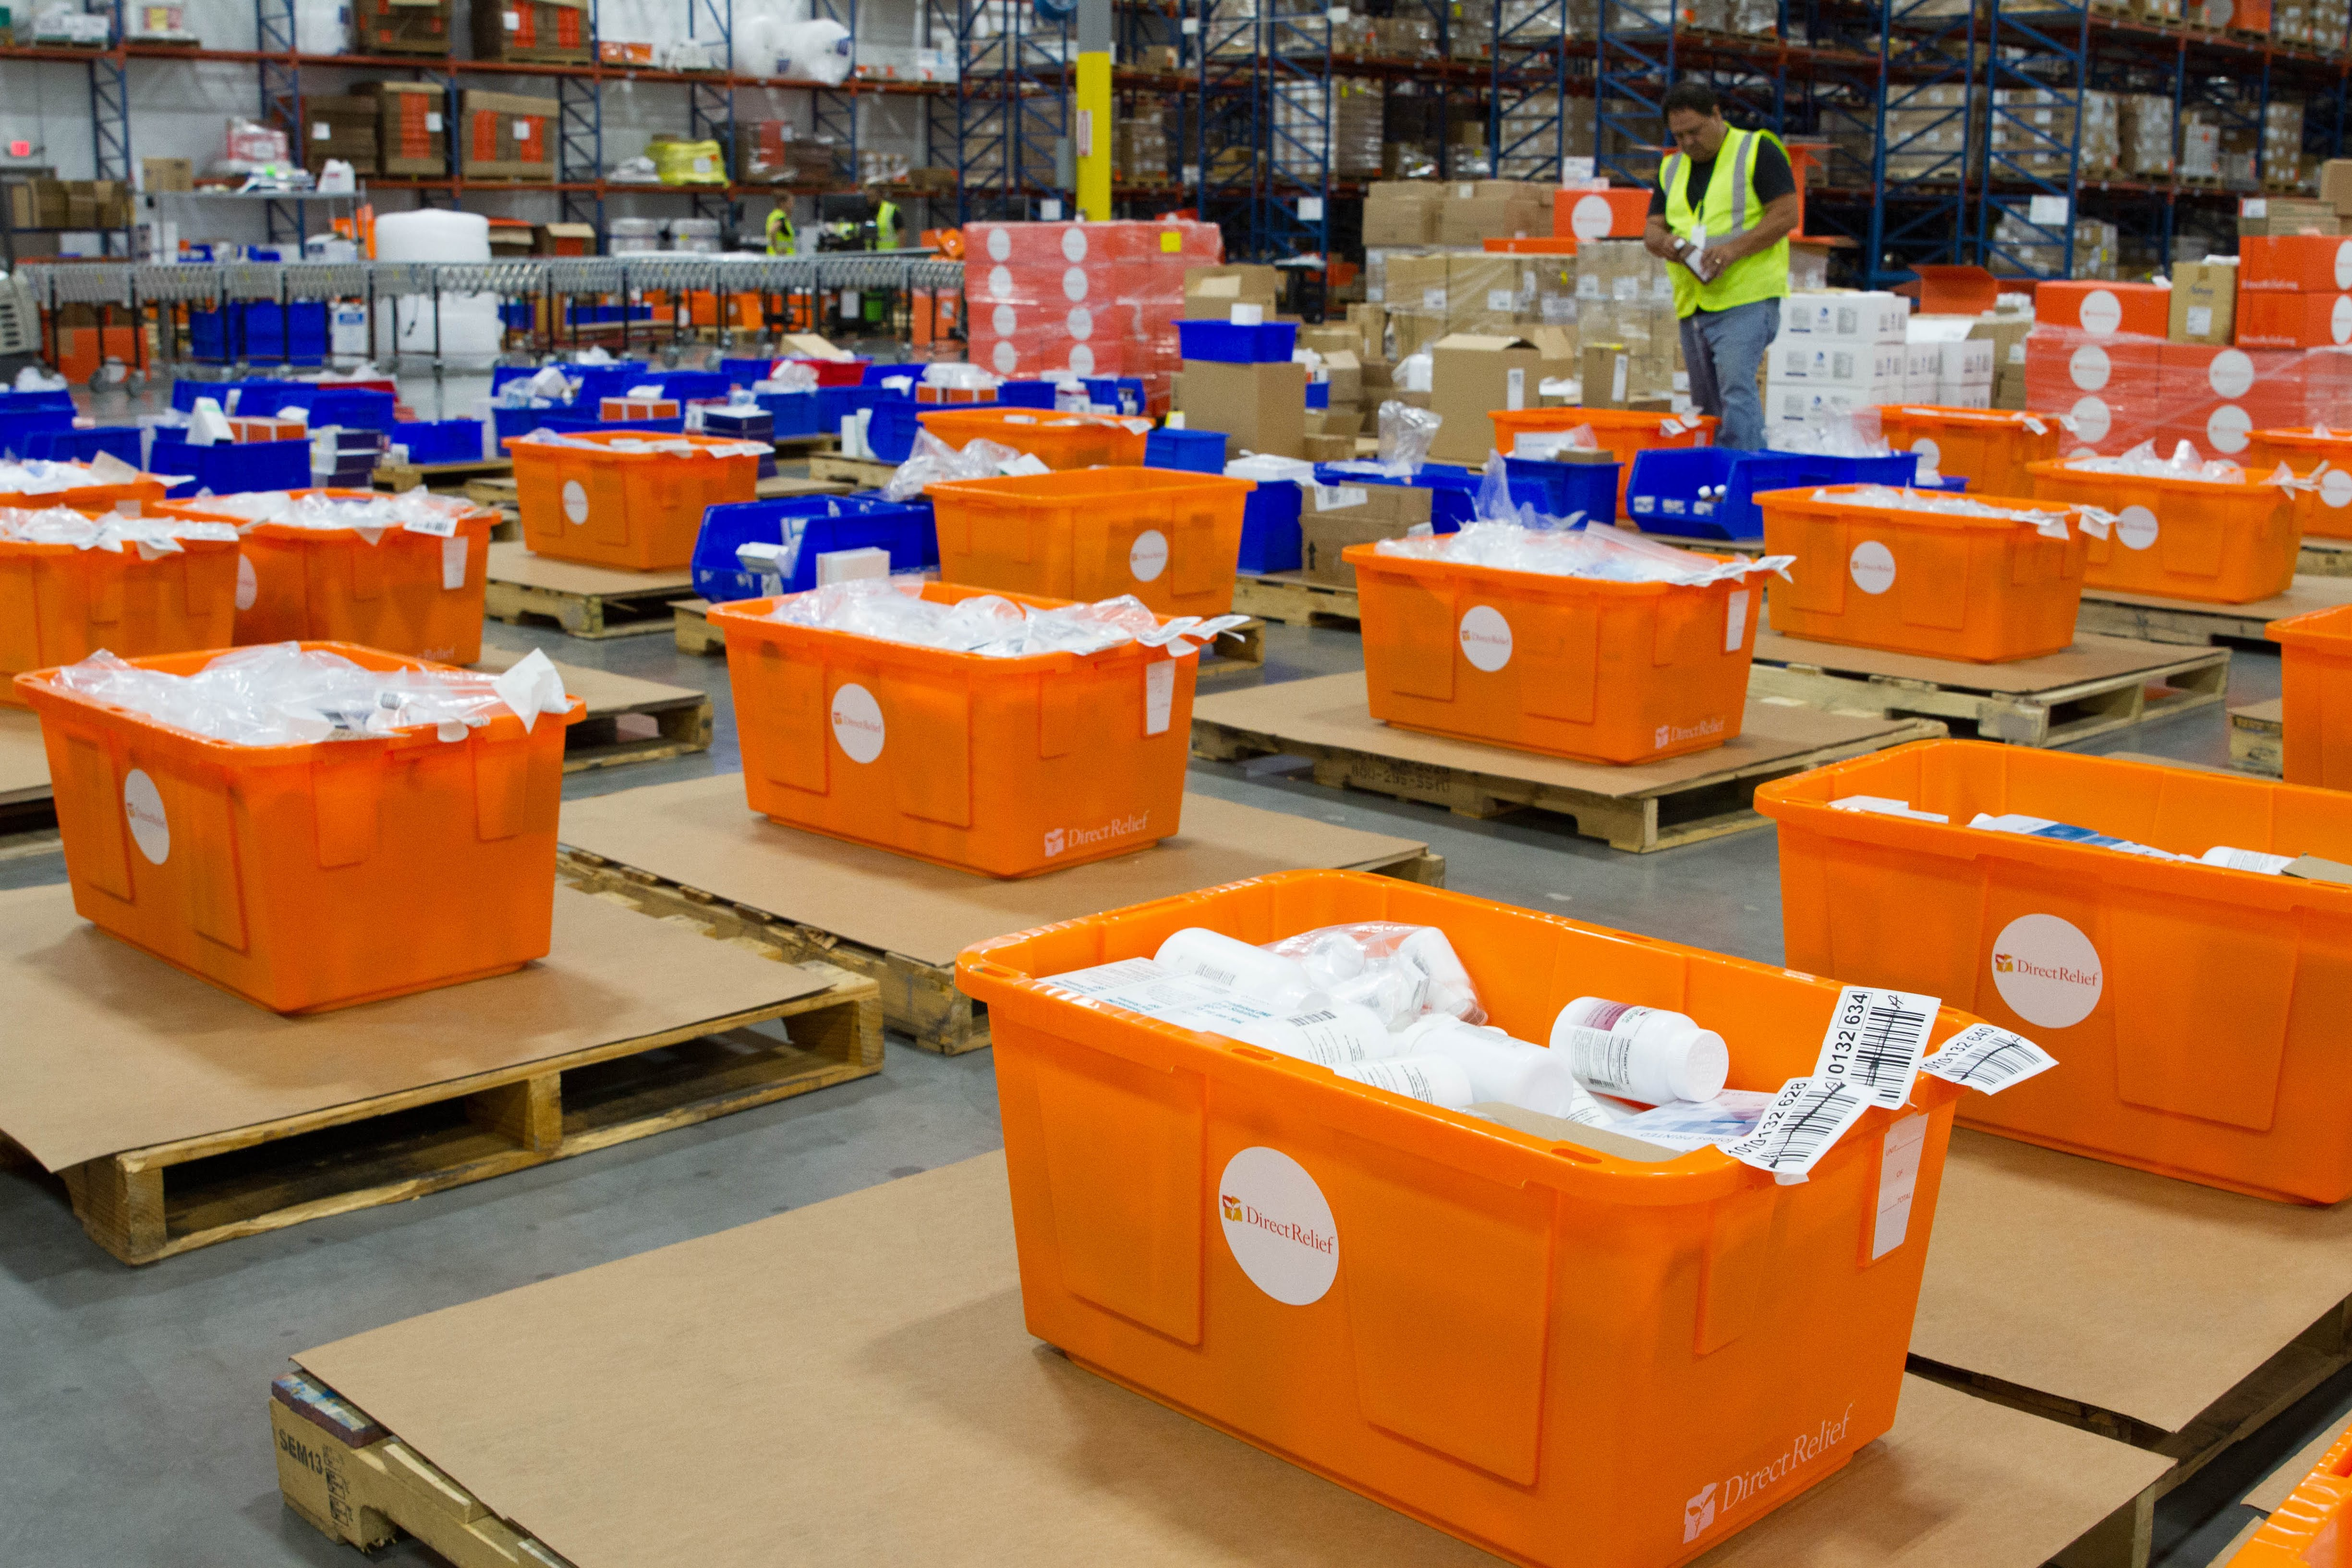 Hurricane Preparedness Packs are built inside Direct Relief's warehouse on August 1, 2018. The packs contain essential medicines and supplies and are prepositioned in hurricane and typhoon-prone areas around the world. (Lara Cooper/Direct Relief)